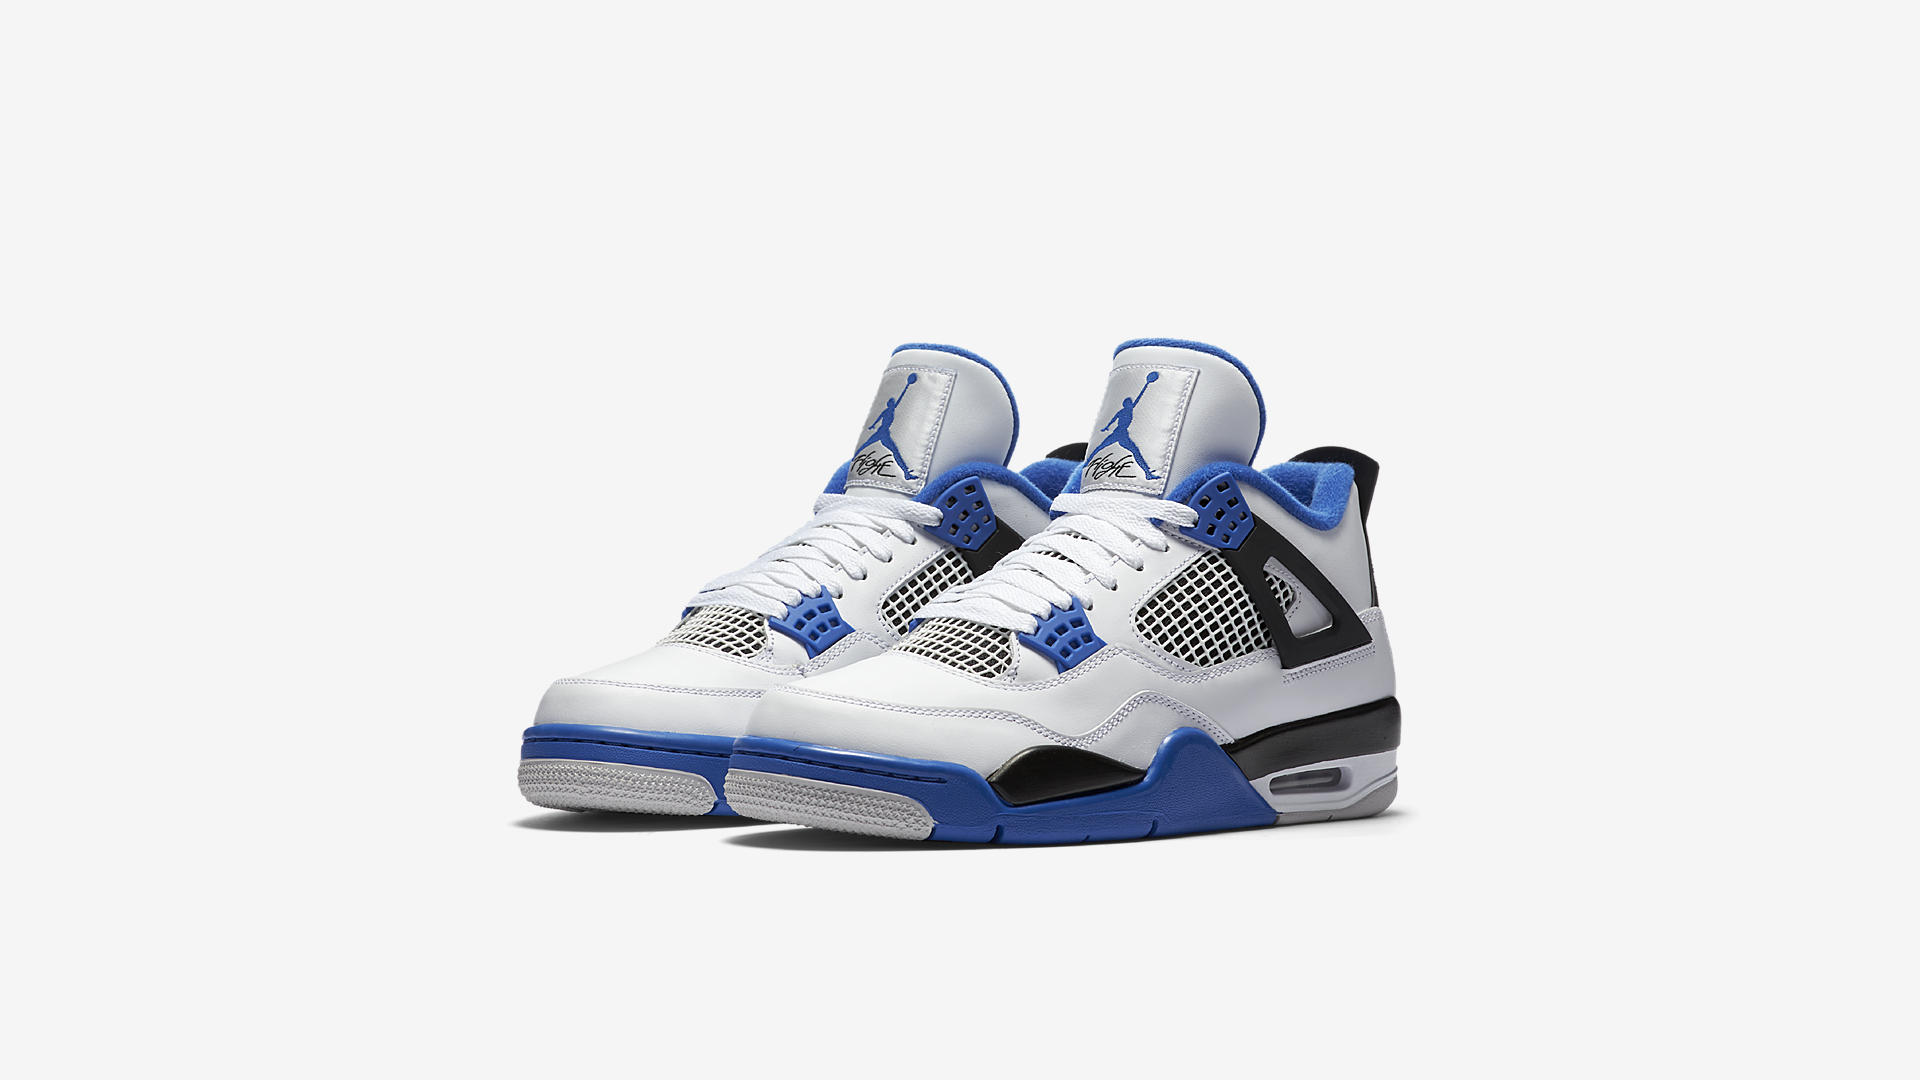 Air Jordan 4 Retro Motorsport 308497 117 5